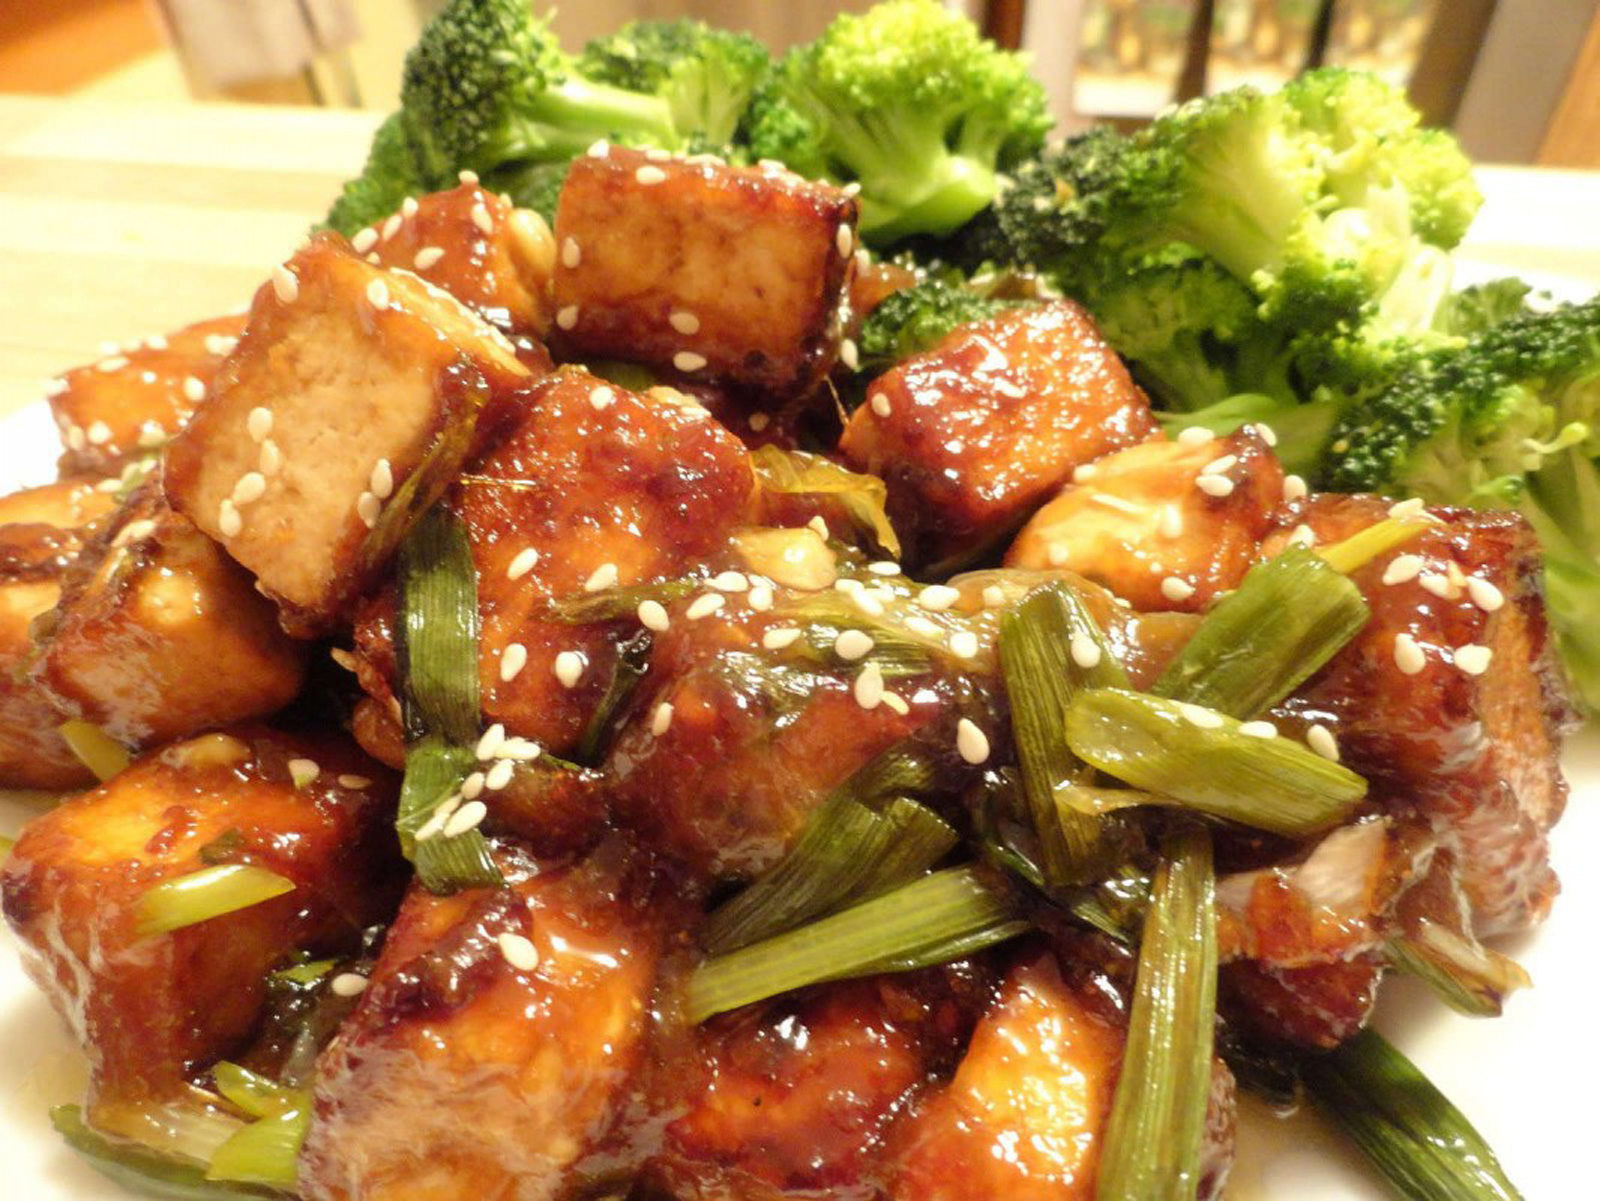 Make Your Own Vegan Chinese Dishes at Home